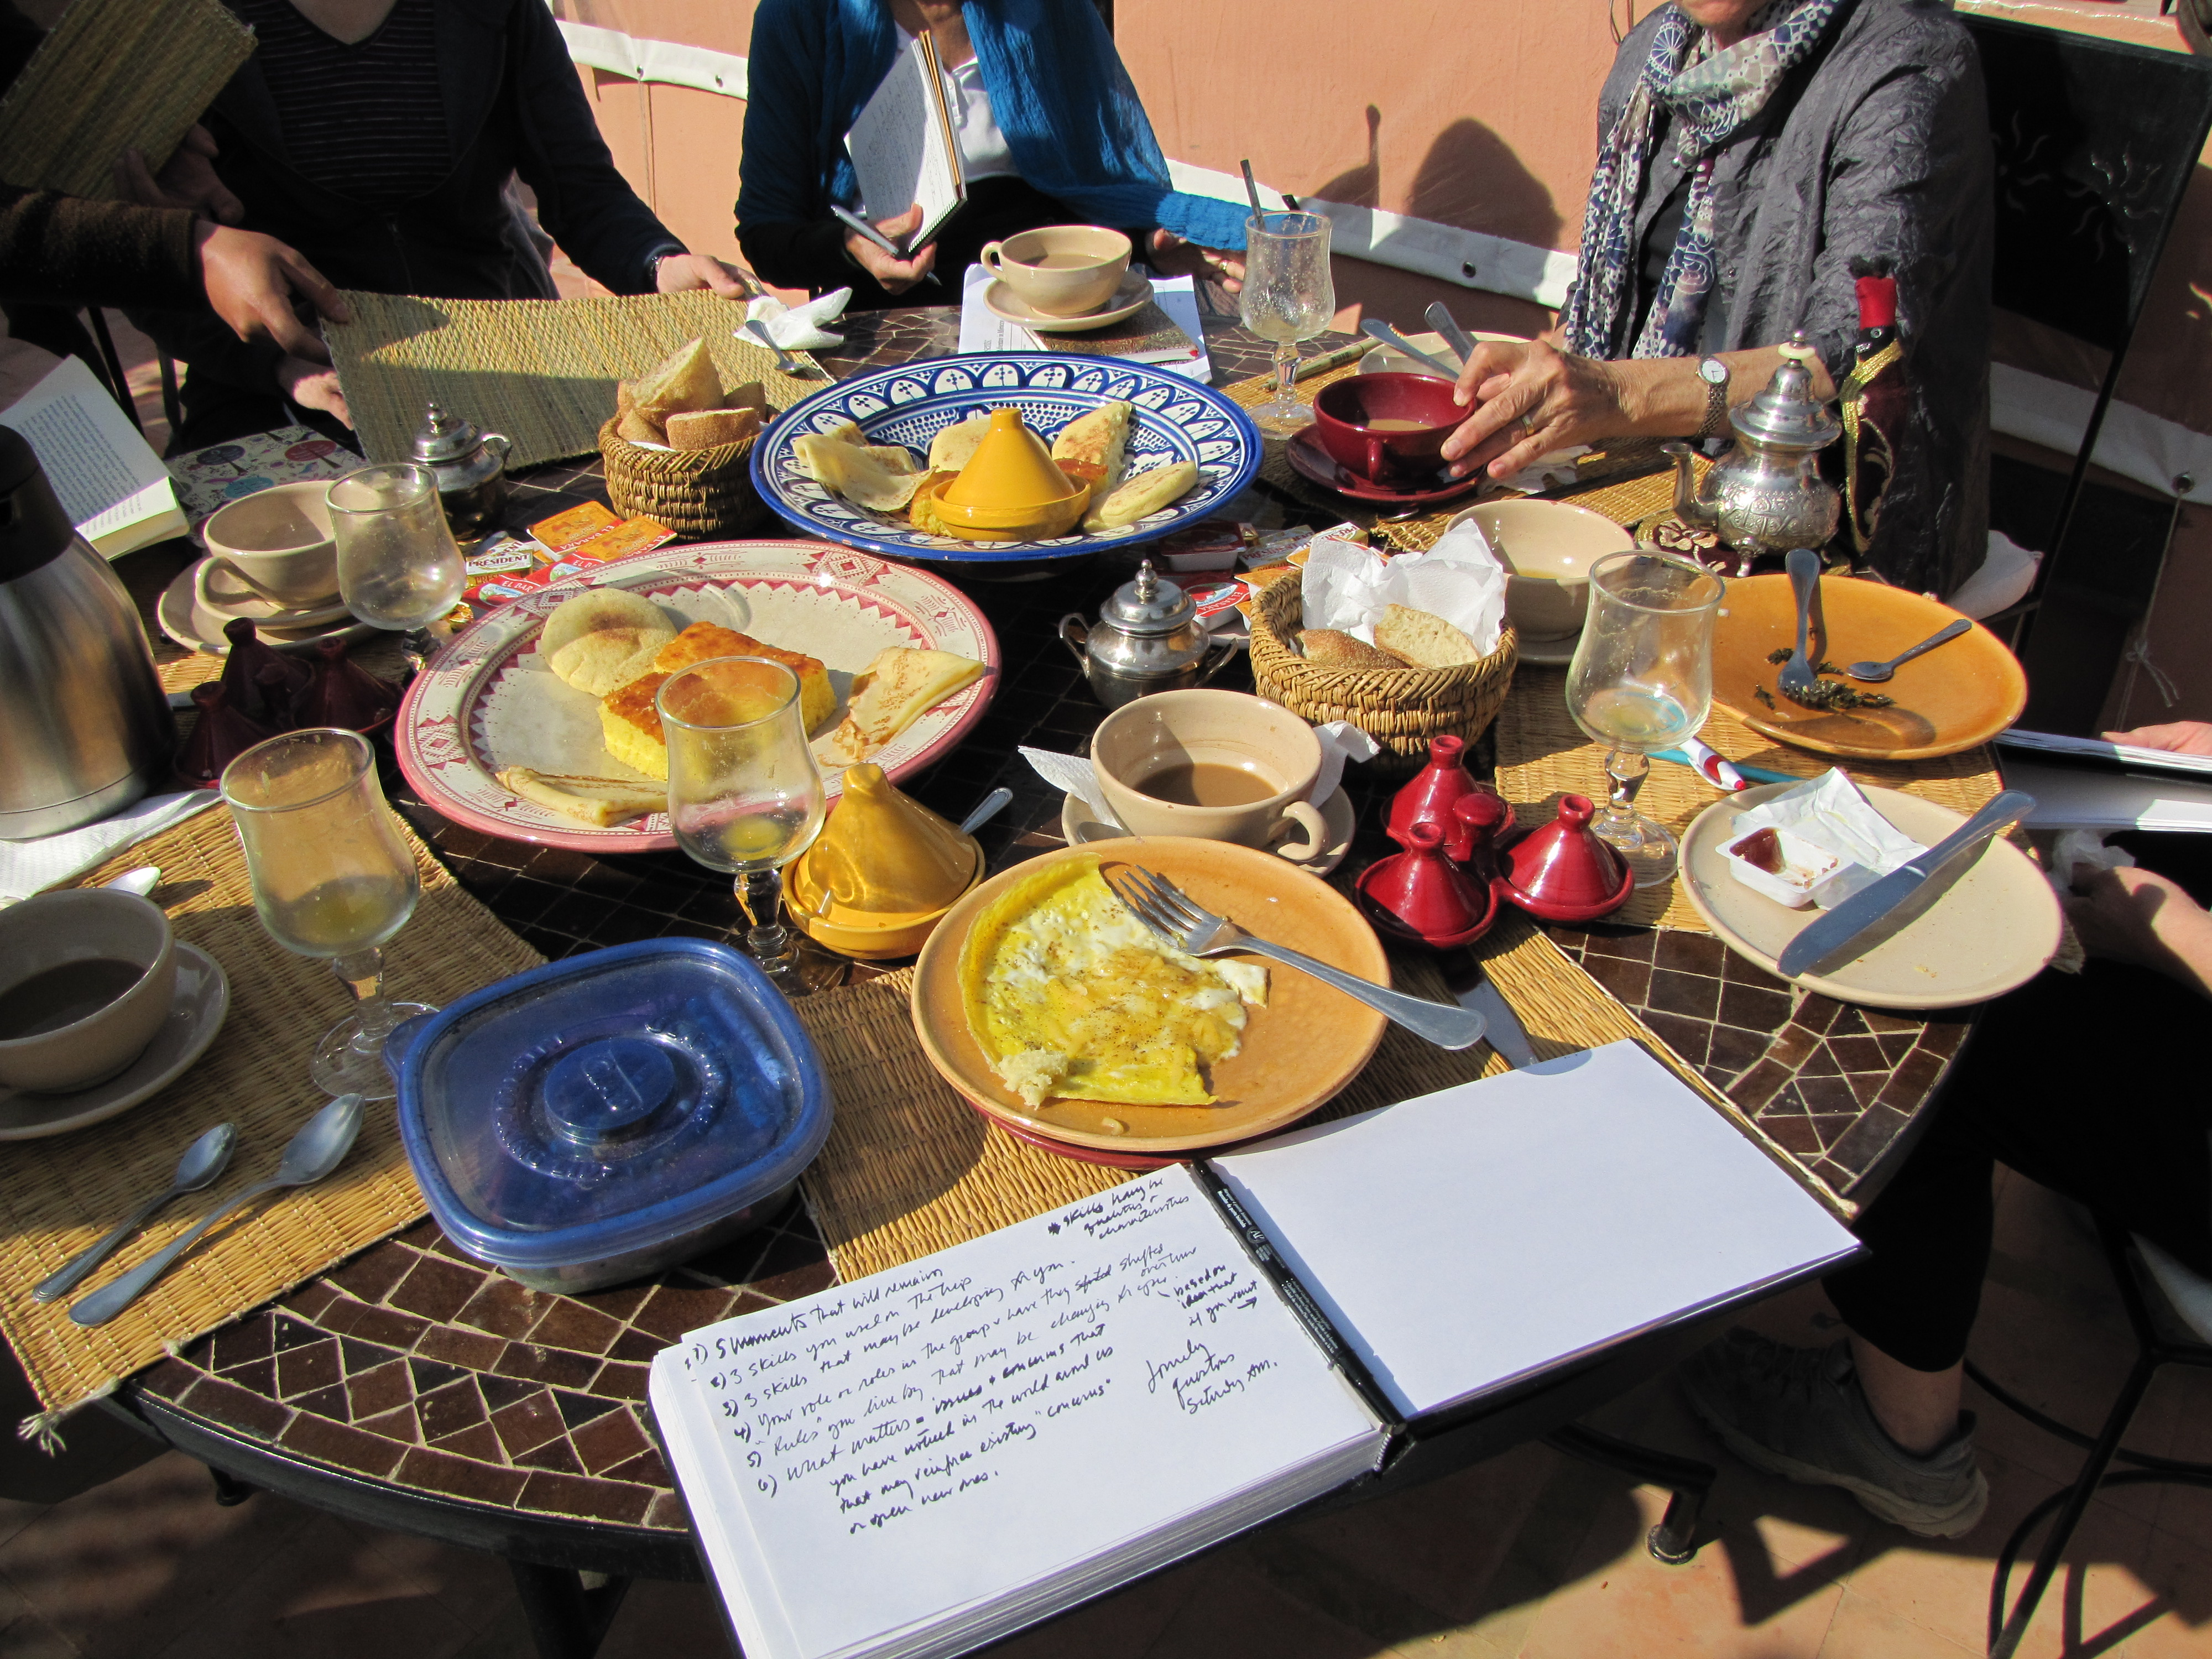 Journaling at breakfast in Marrakech